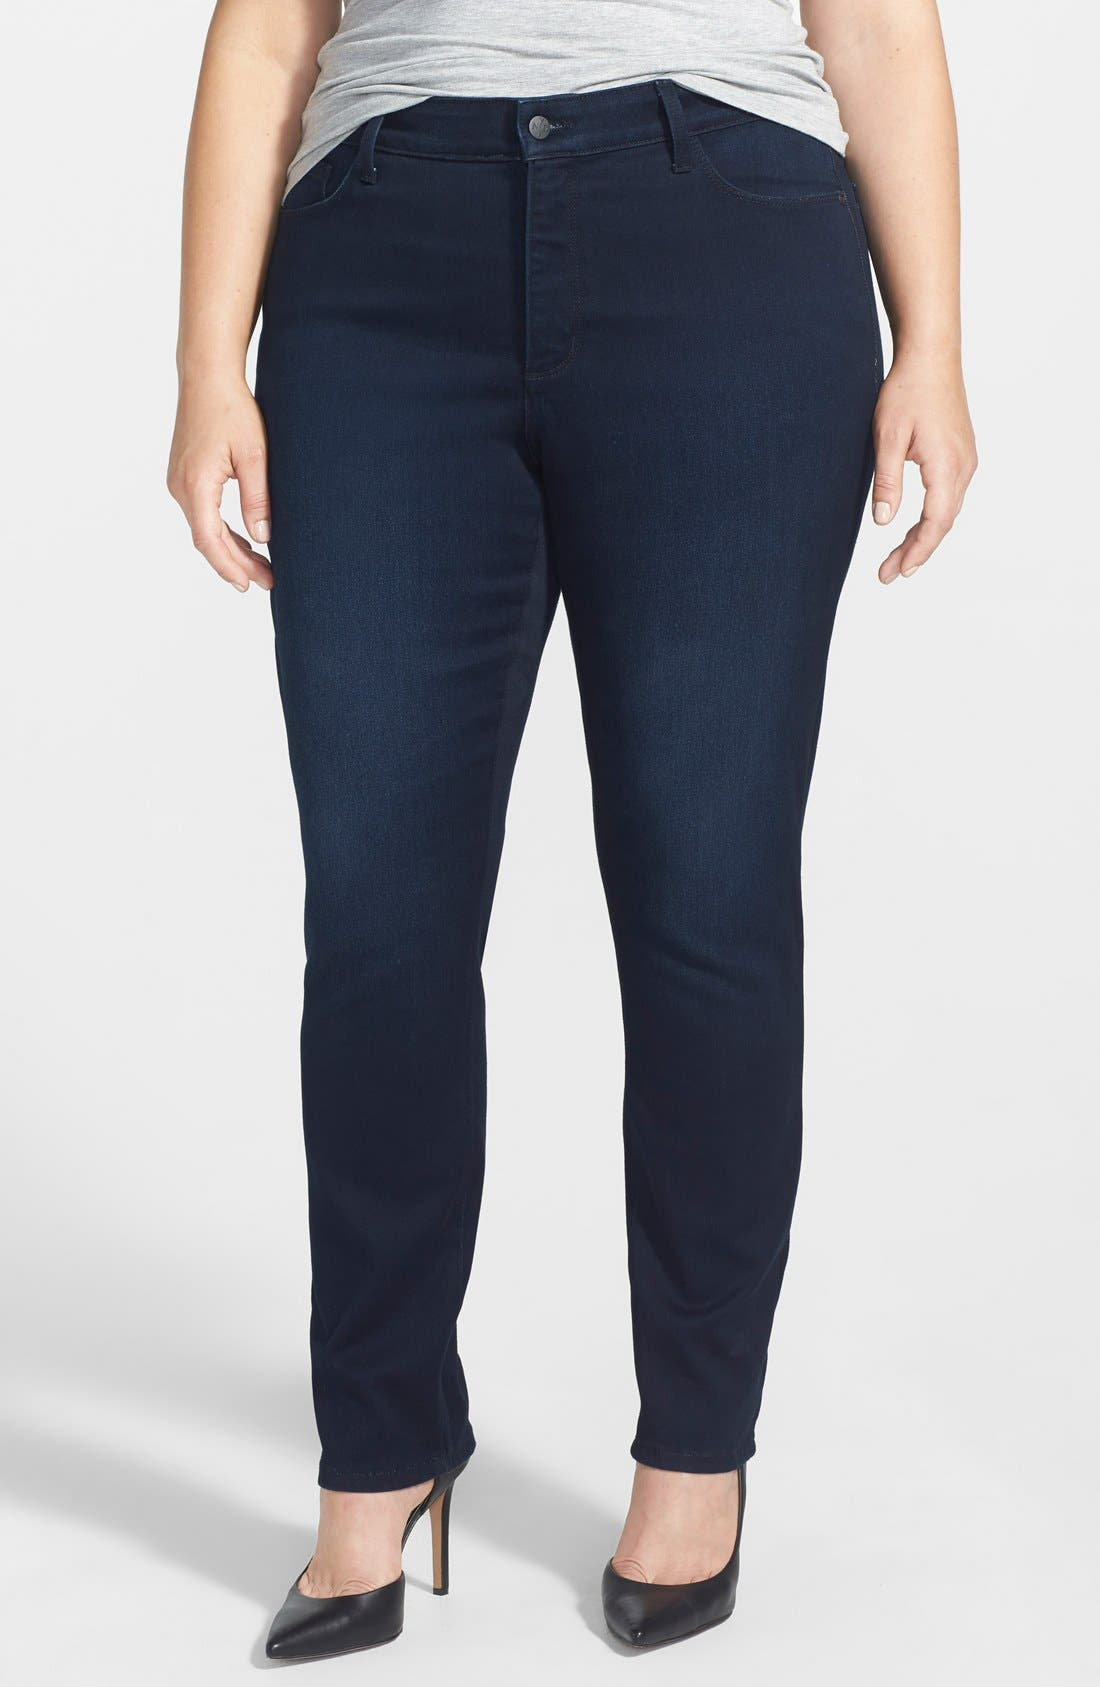 Alternate Image 1 Selected - NYDJ 'Jade' Stretch Skinny Jeans (Norwell) (Plus Size)